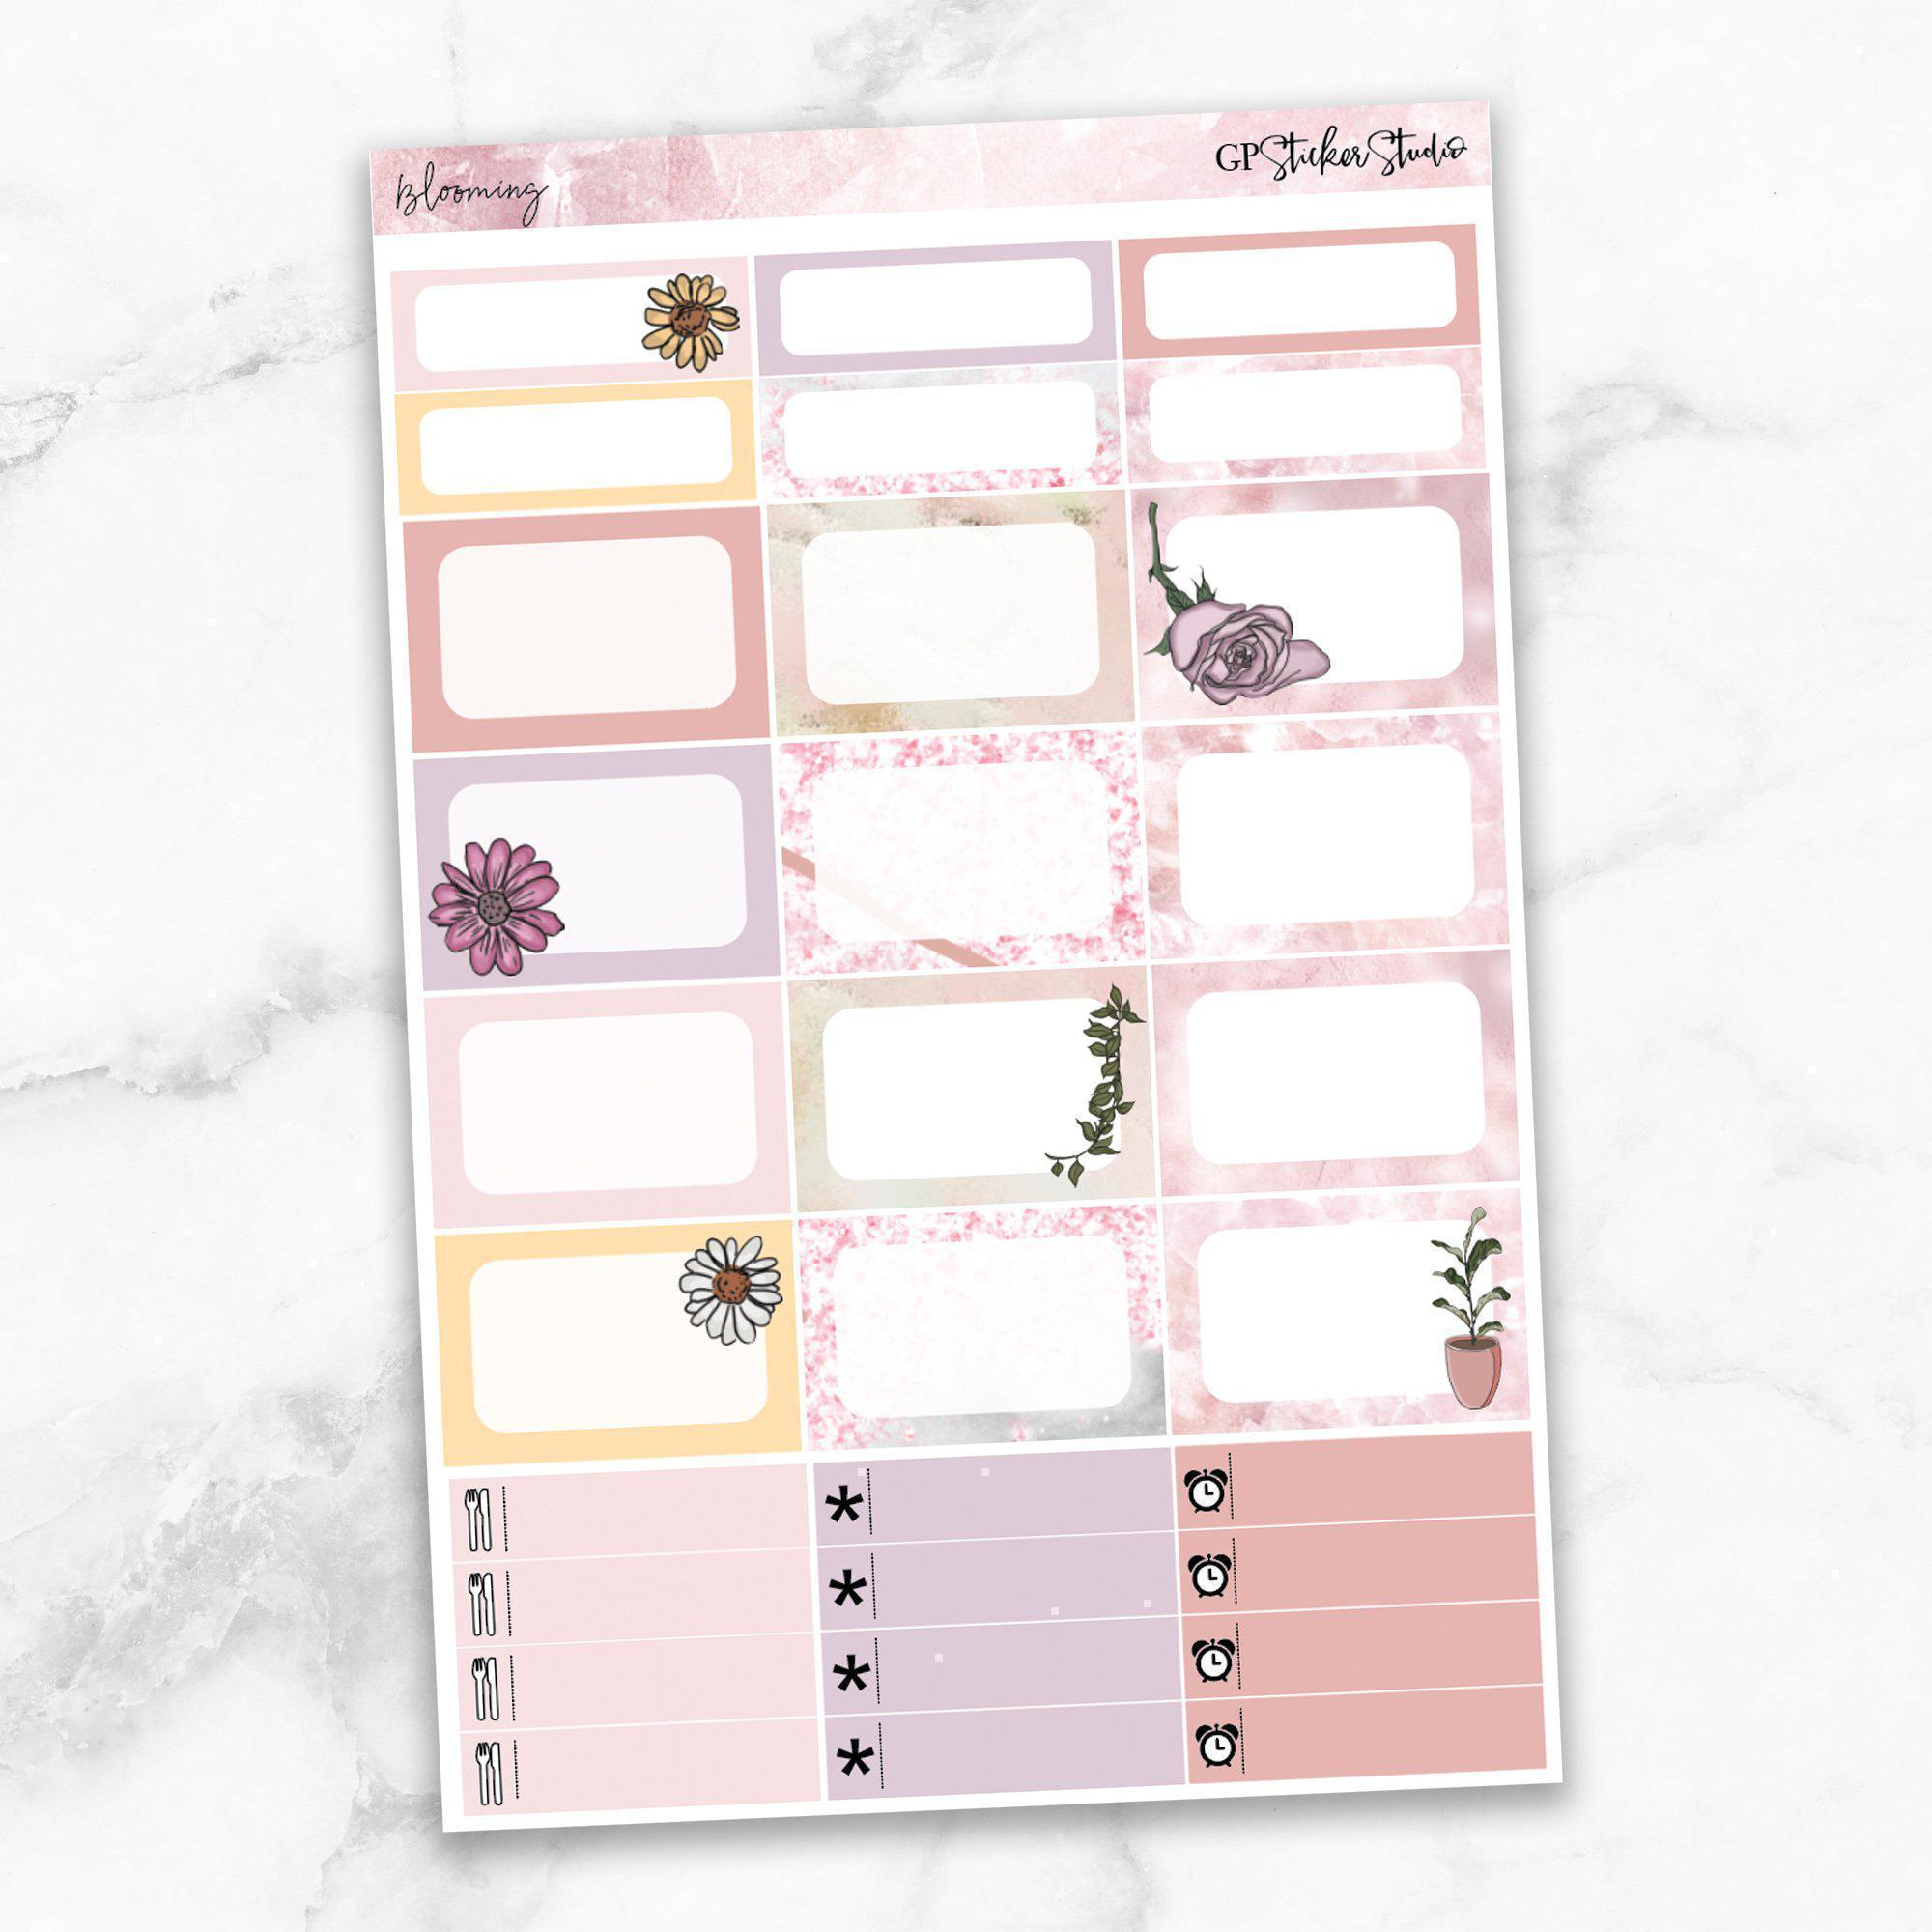 BLOOMING Half Boxes Planner Stickers-The GP Studio